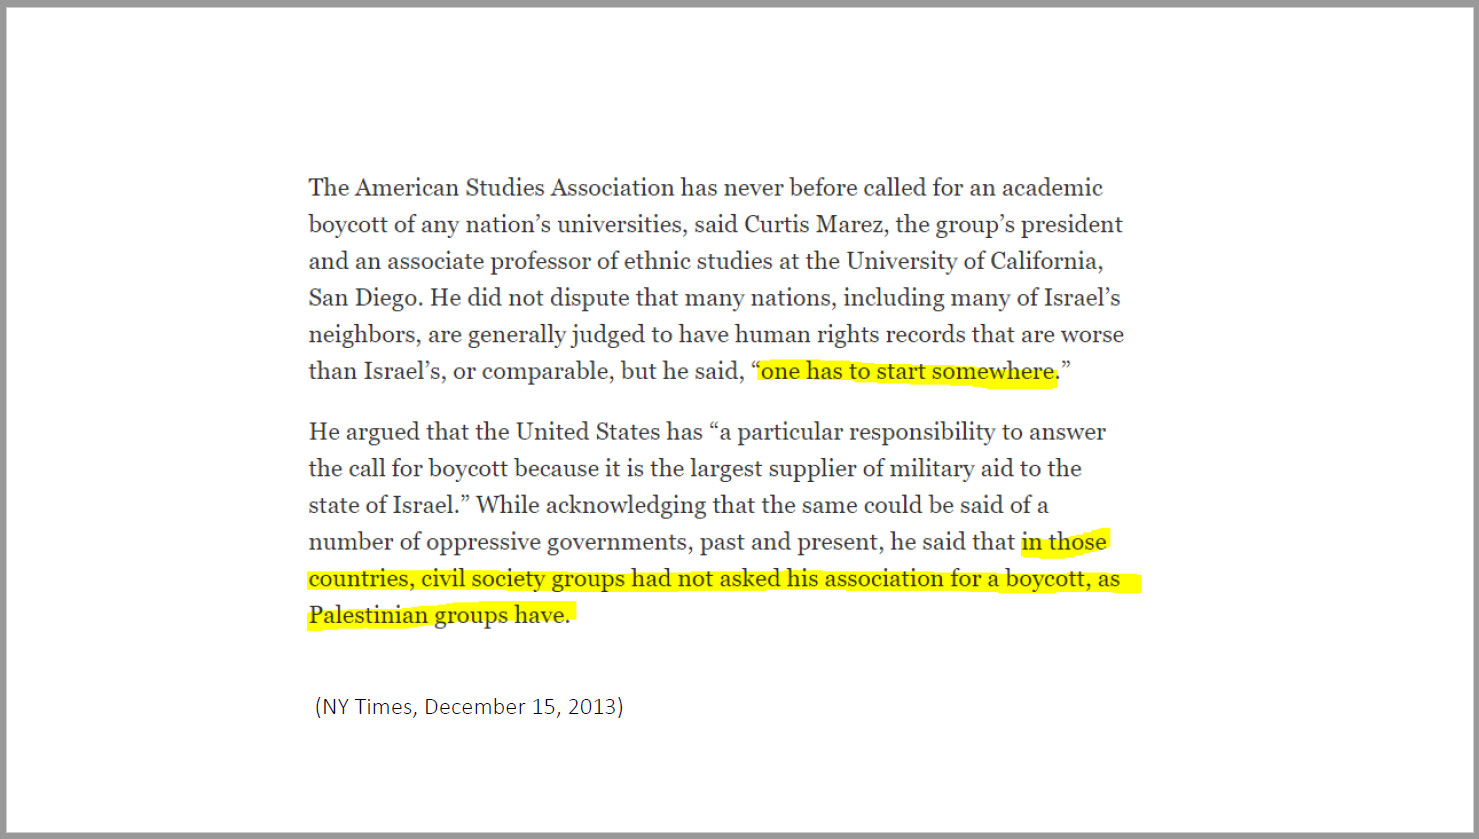 bds-history-slide-core-curtis-marez-ny-times-start-somewhere